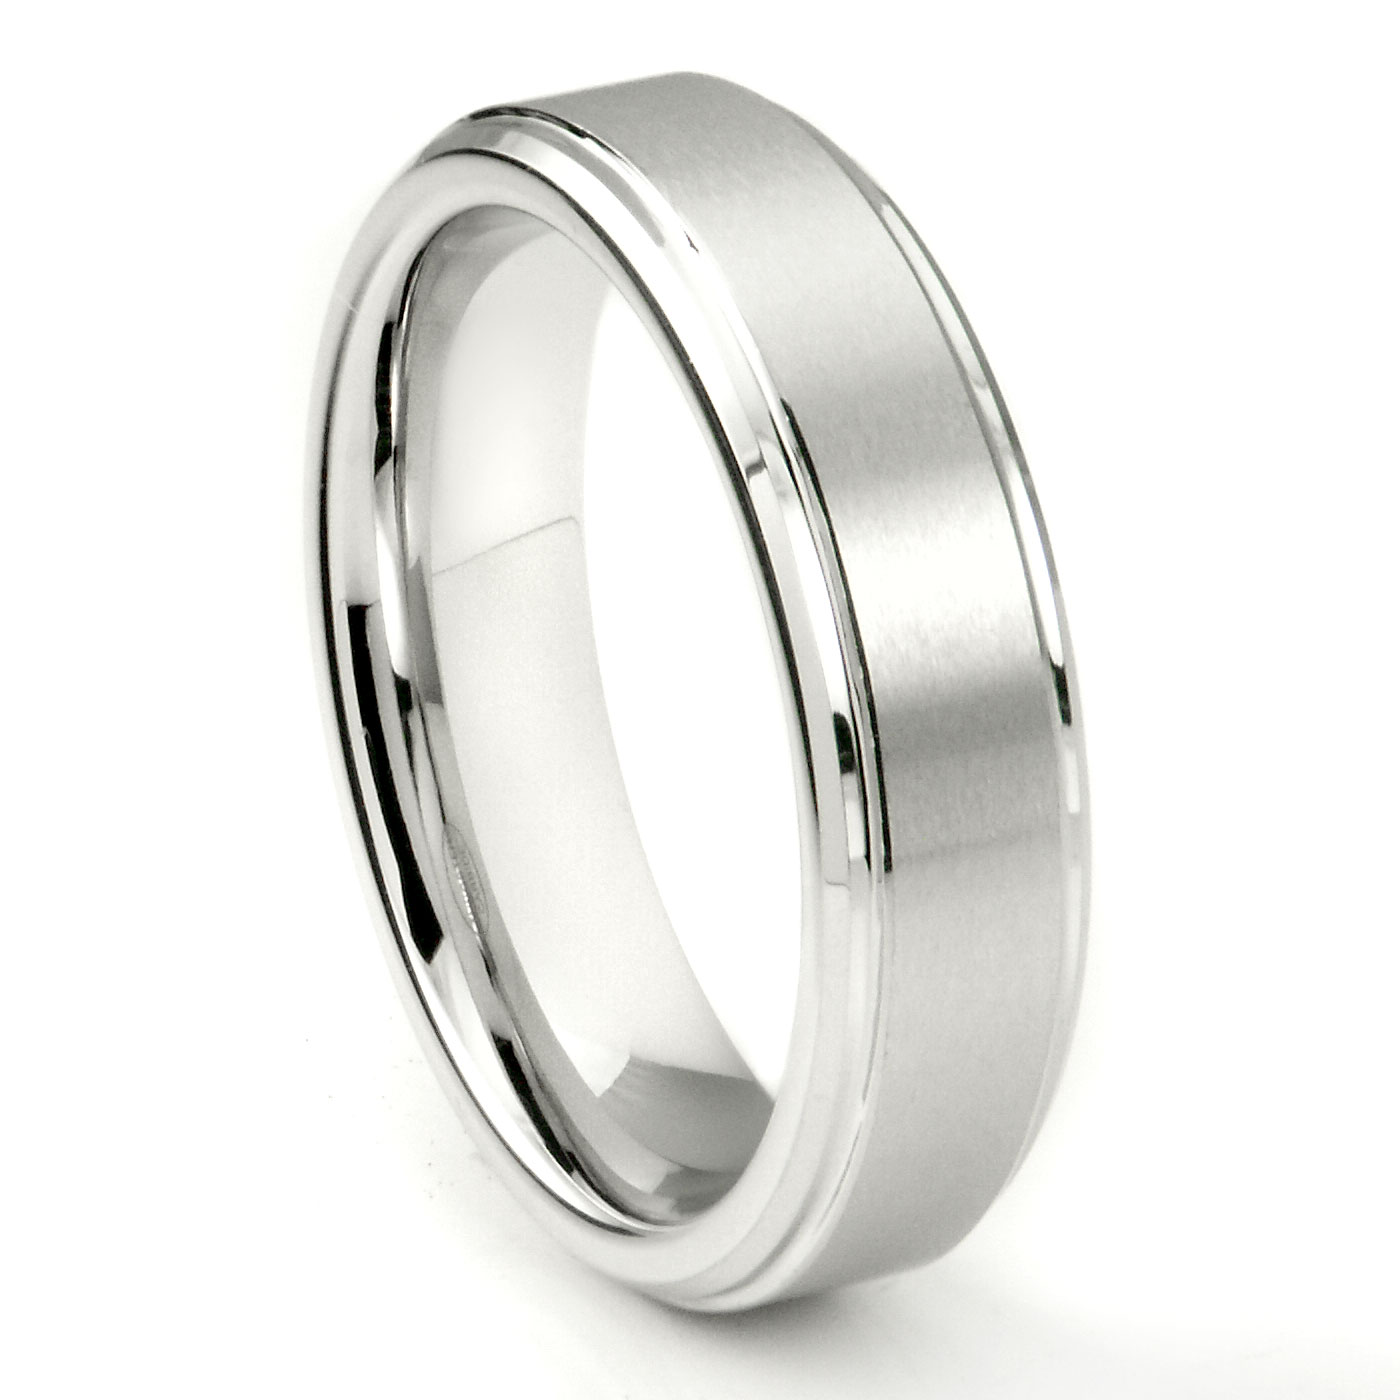 rings bevel wedding collections triton and ring tungsten edge carbide link tc g jewelry bands angle